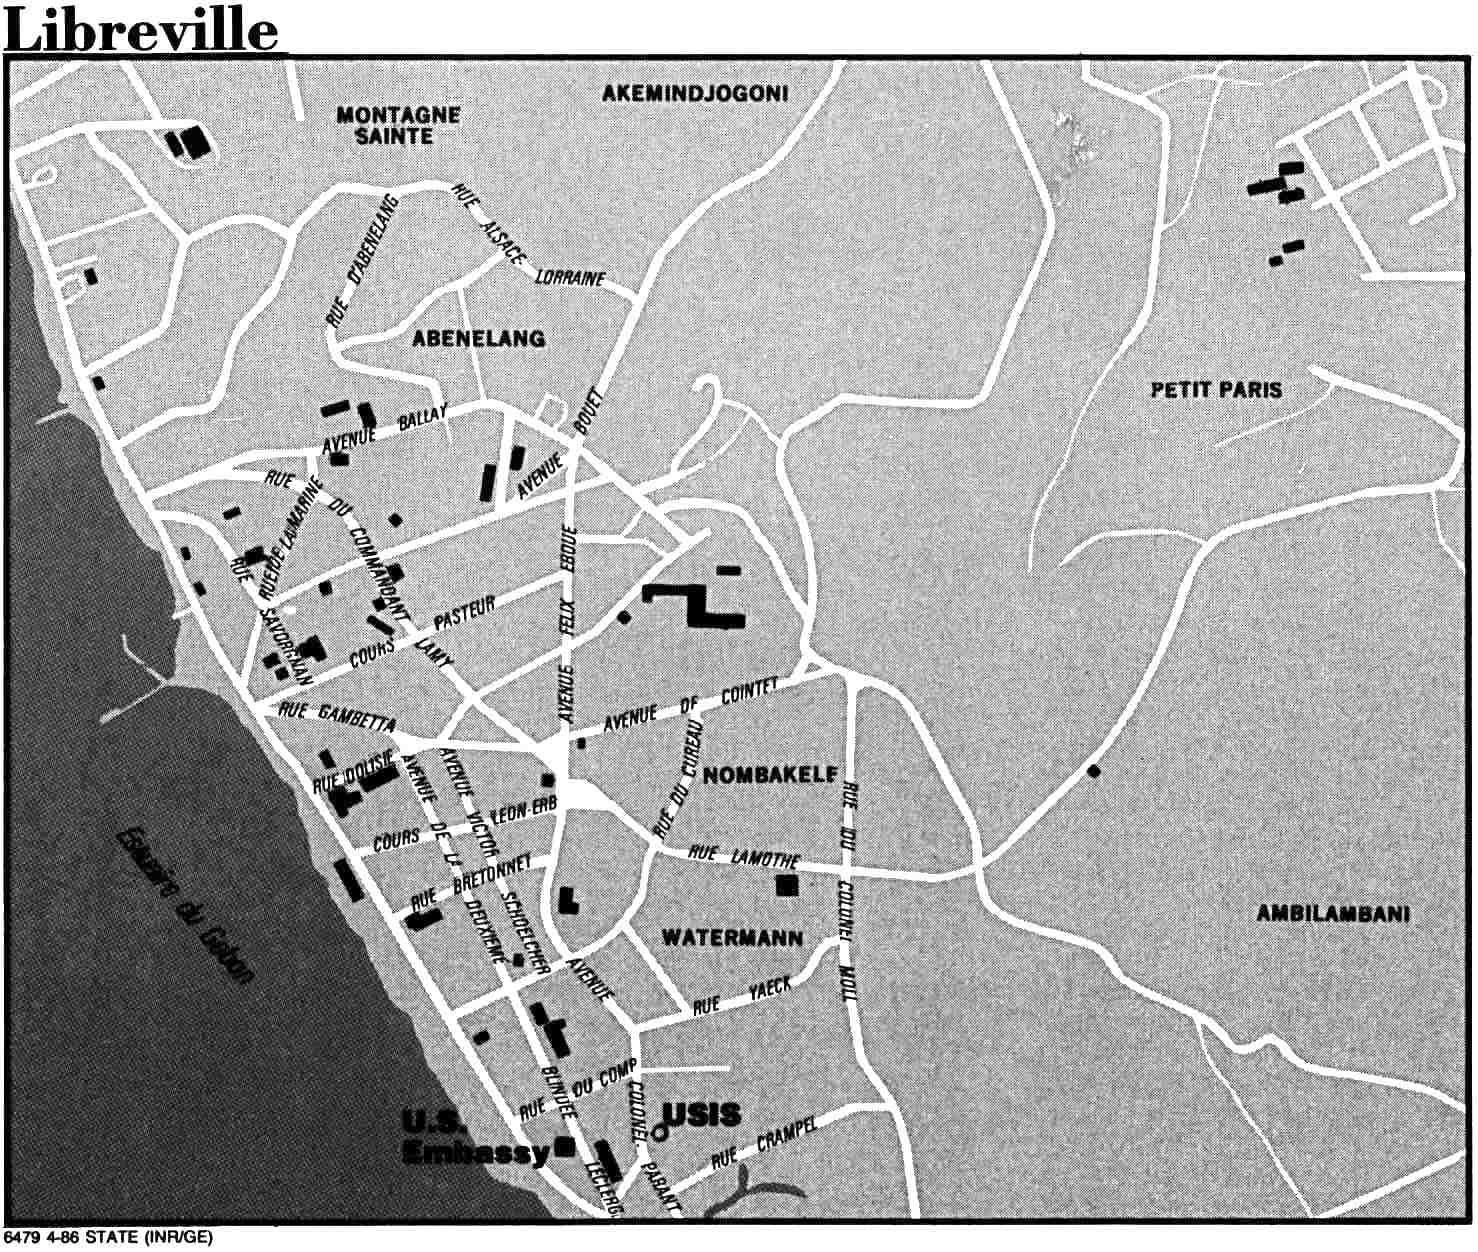 Libreville City Map, Gabon